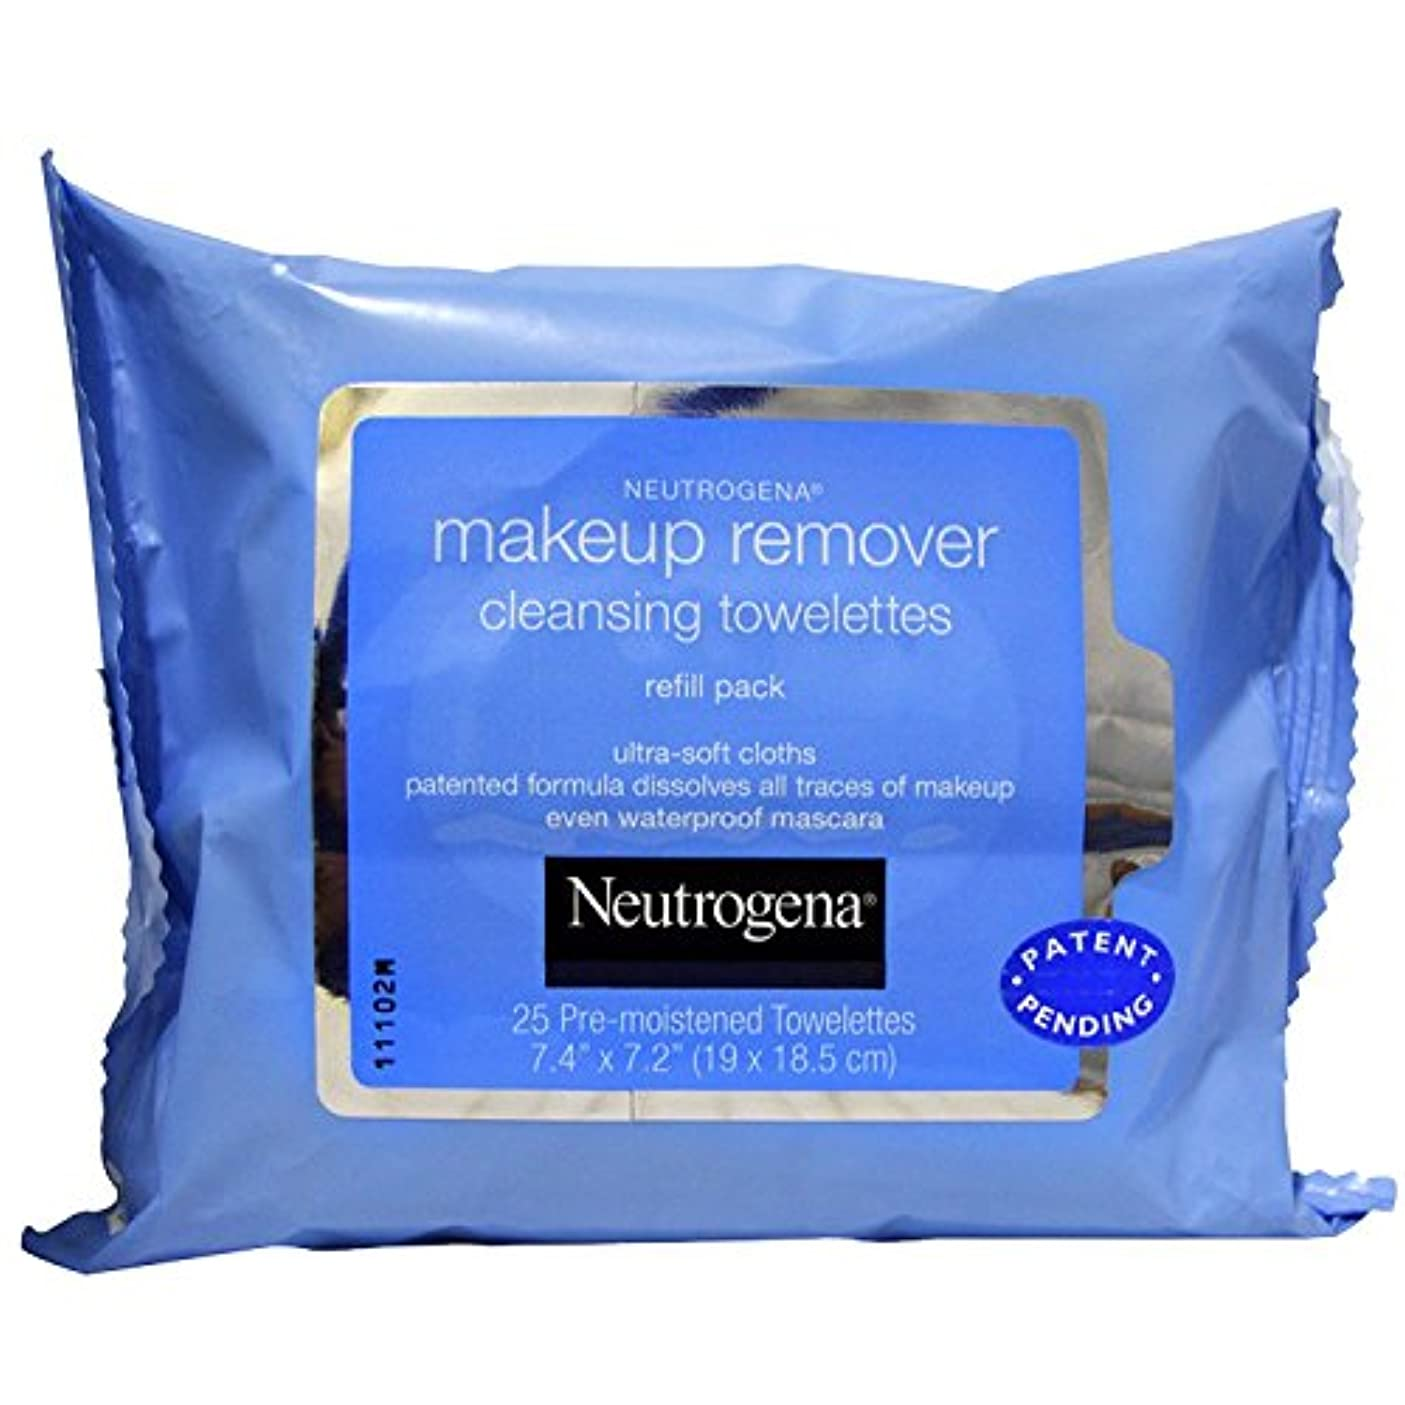 父方の路面電車脊椎NEUTROGENA Makeup Remover Cleansing Towelettes Refill Pack - 25 Count - 25 Towelettes